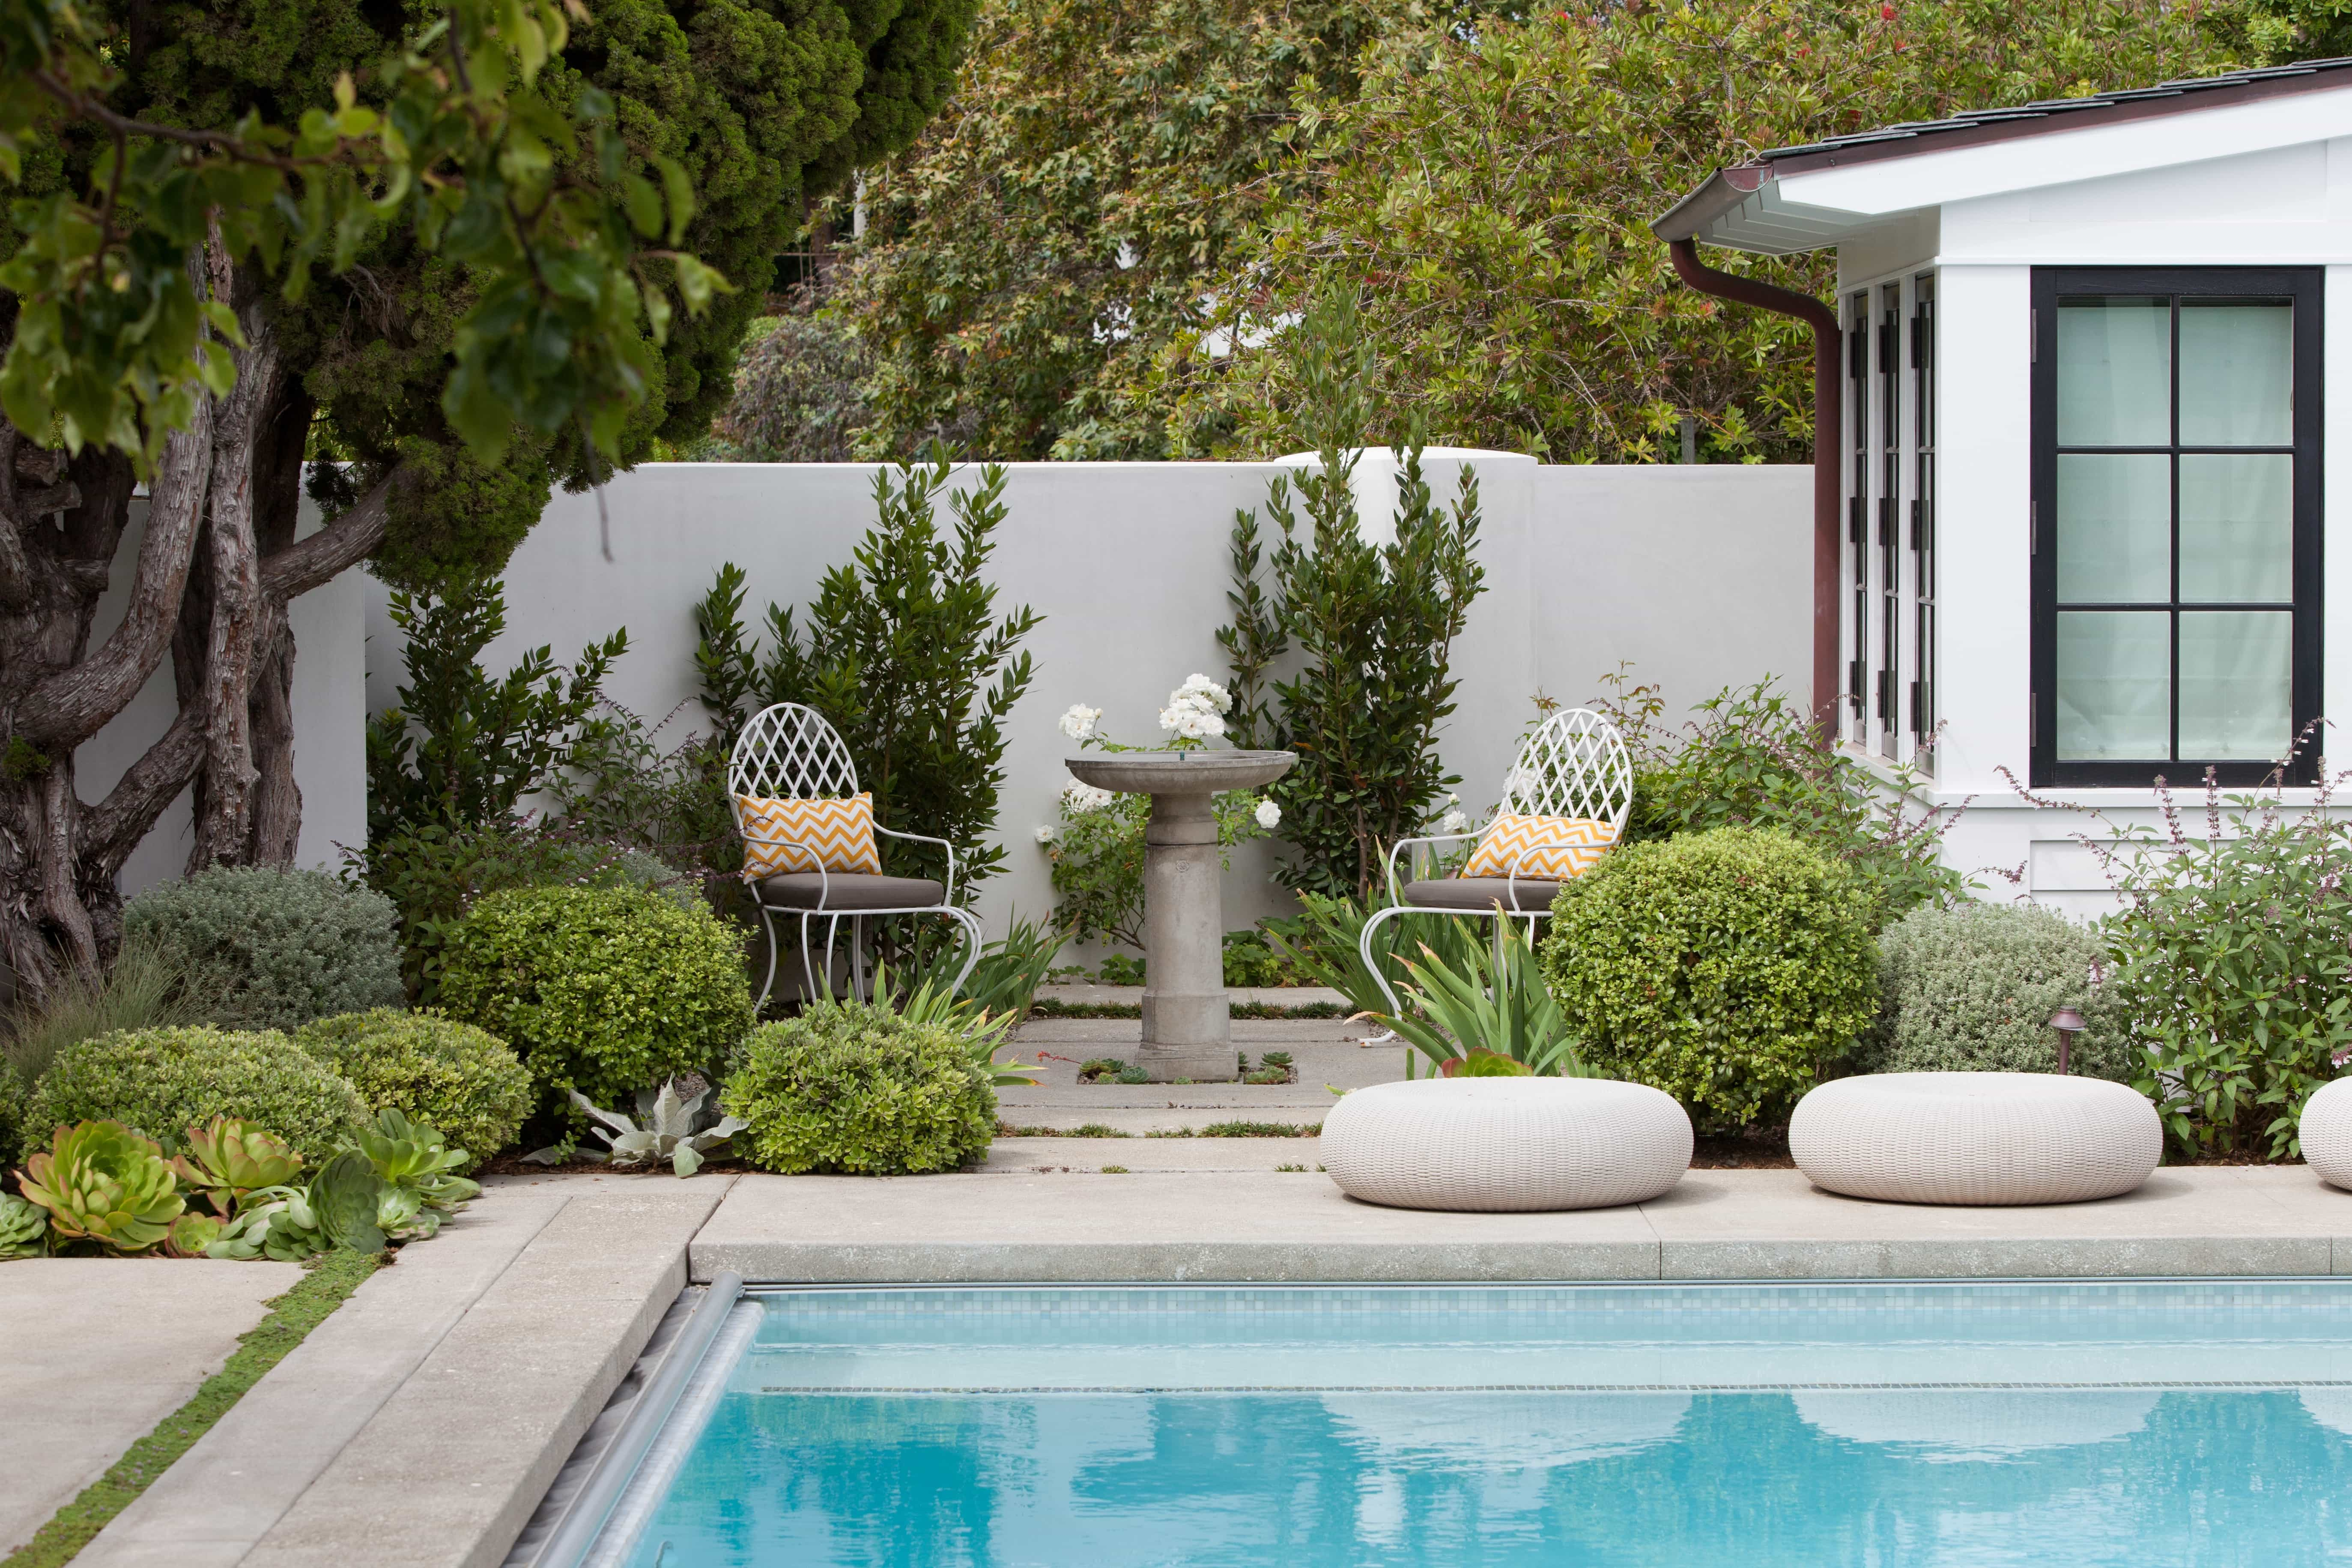 Contemporary Outdoor Pool With Lounge Chairs And Garden (Photo 20 of 25)